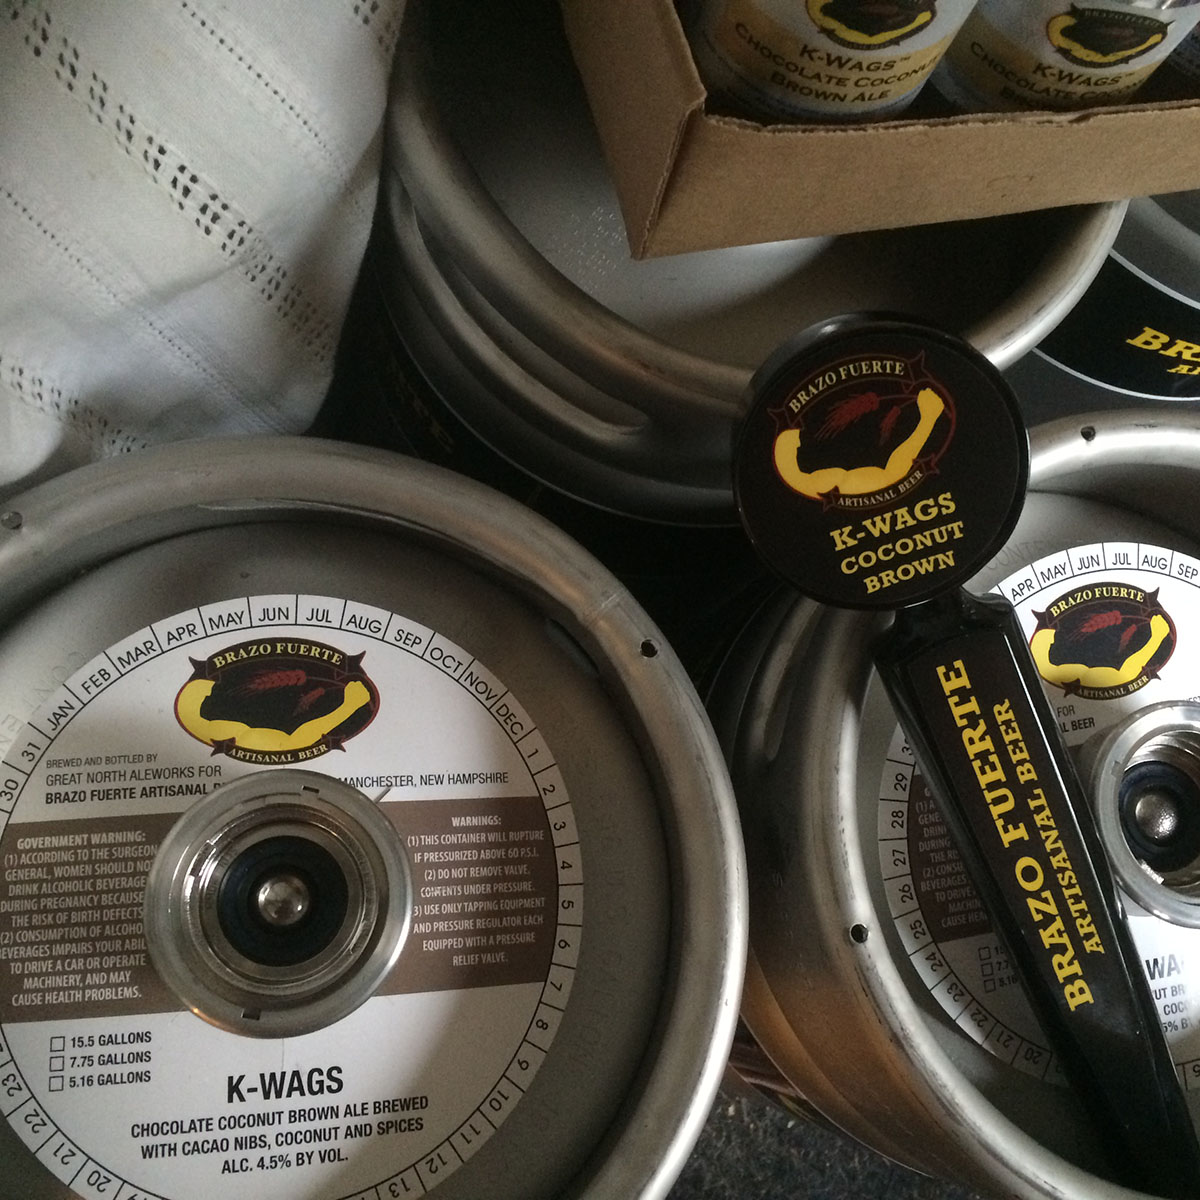 Kegs, cans, and tap handles for Brazo Fuerte's K-Wags chocolate ale